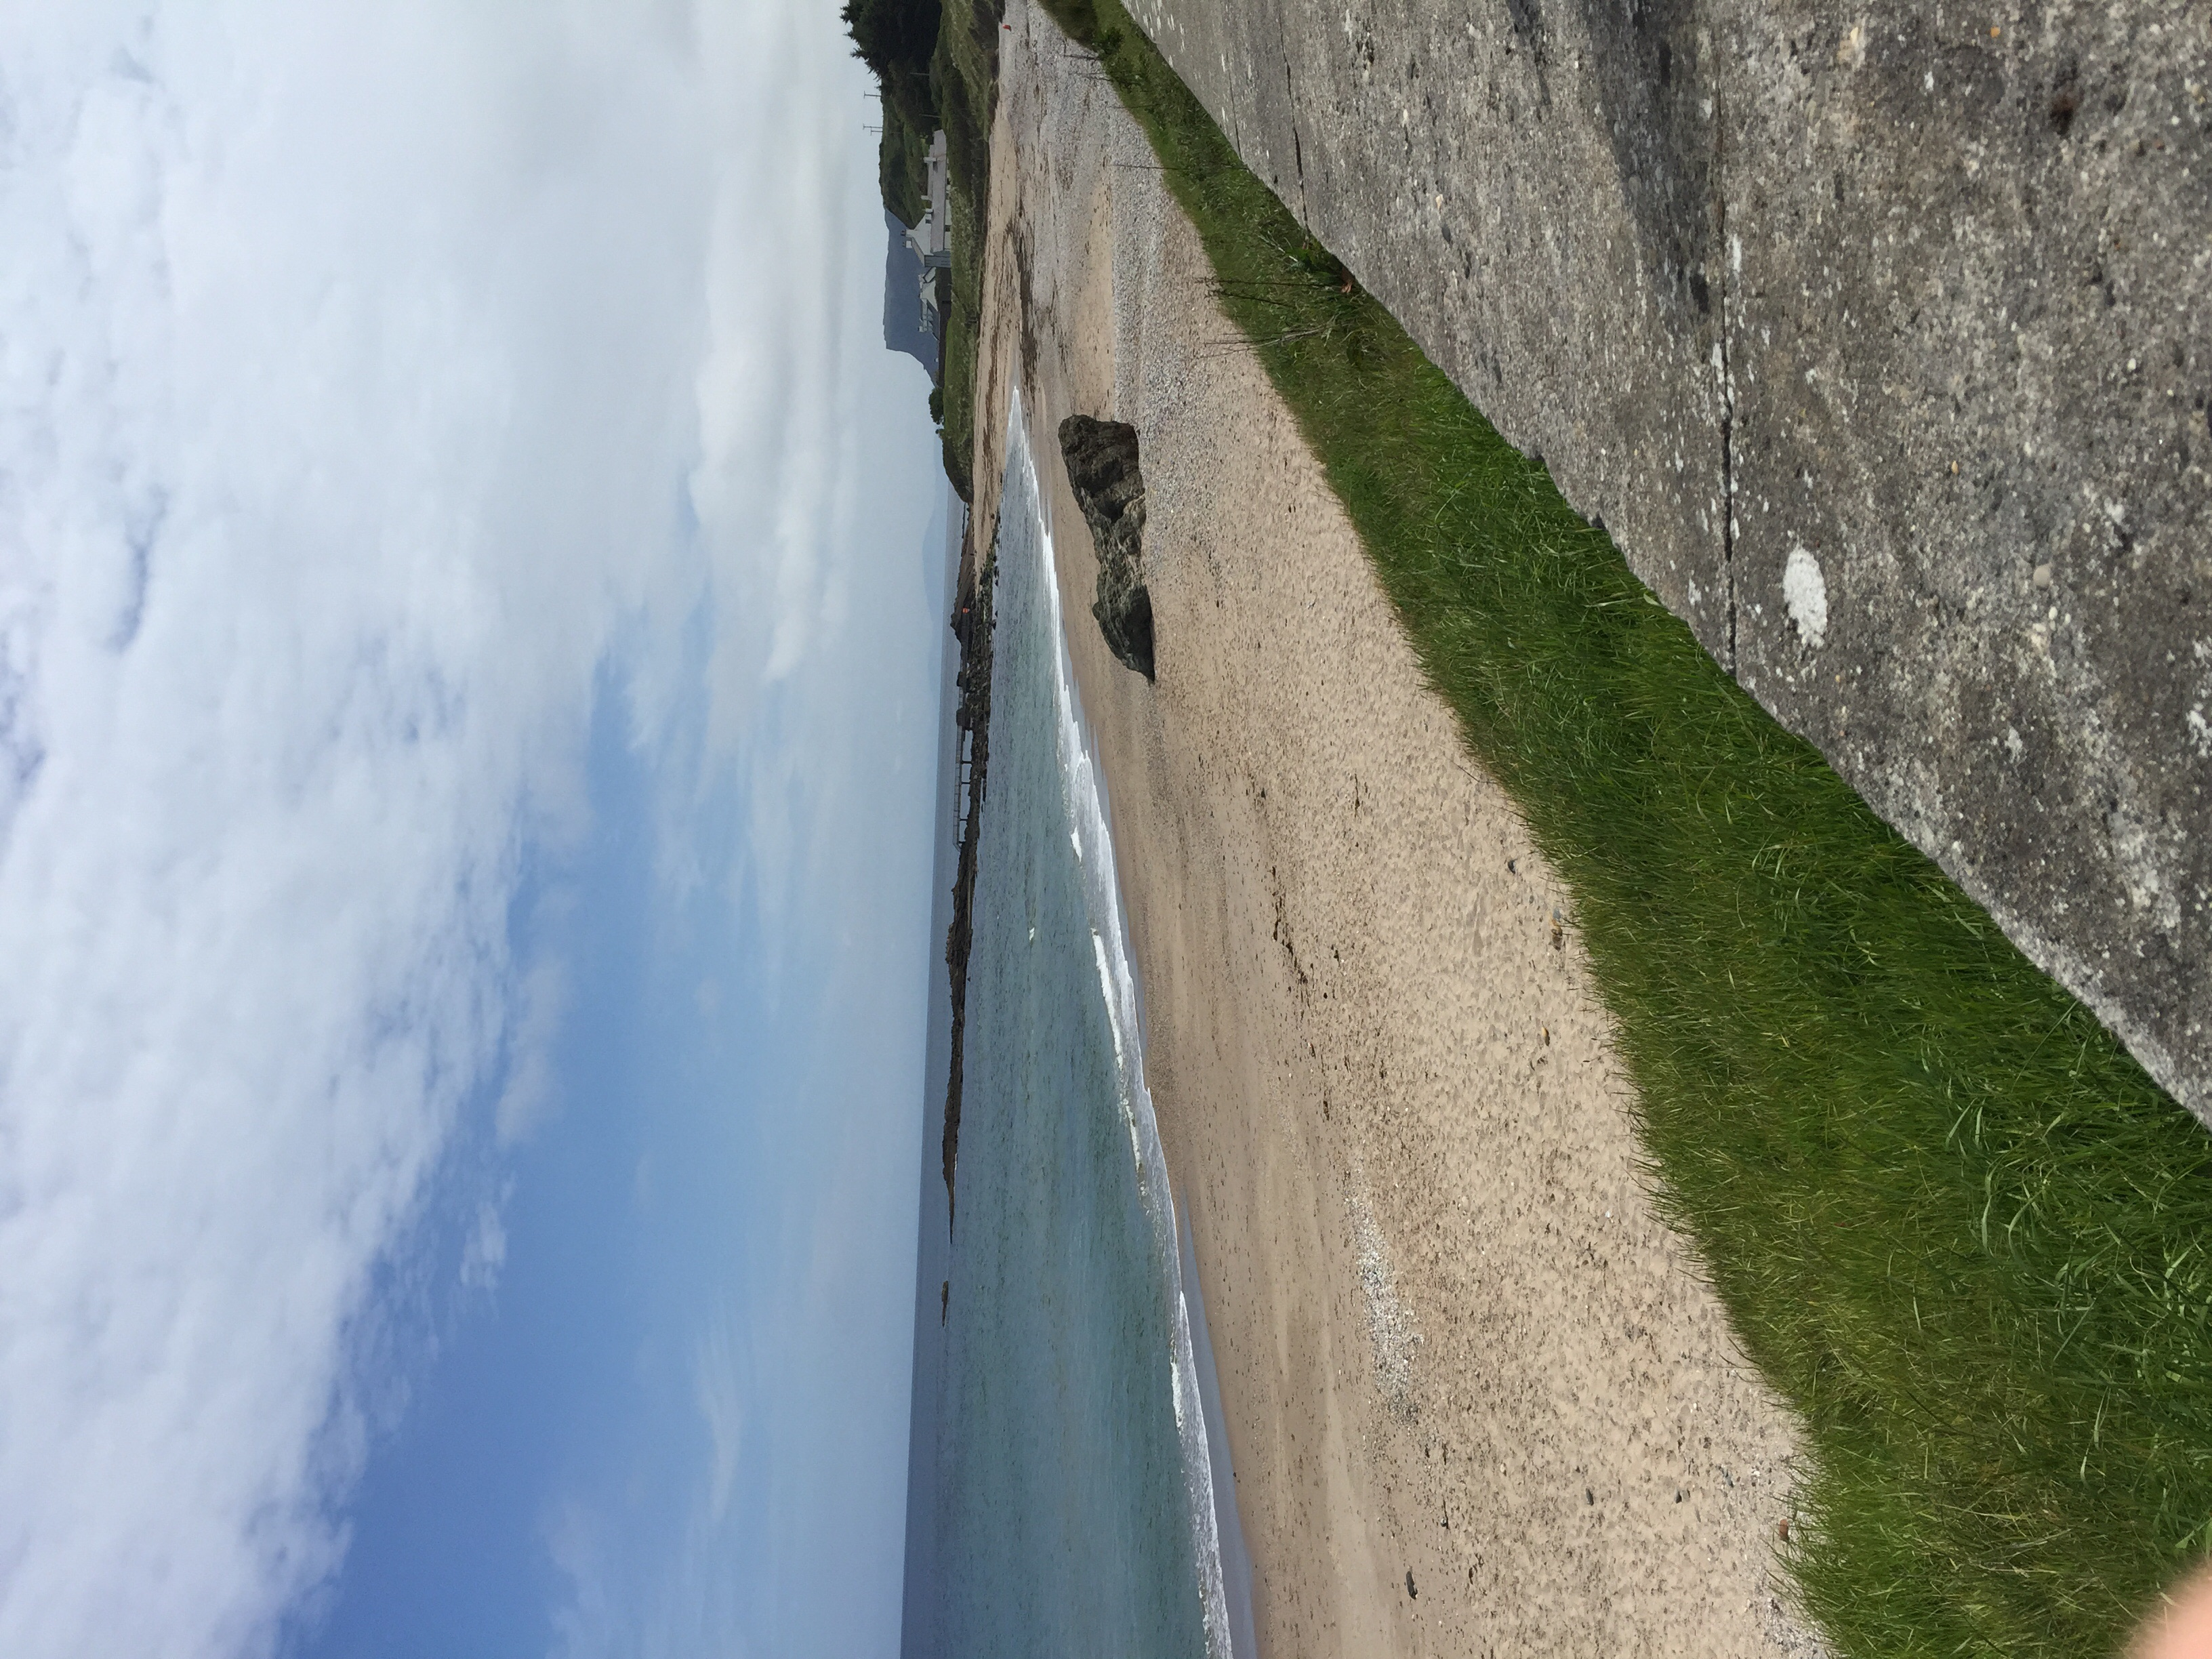 Ballycastle coast, where Paddy's family has a caravan(trailer to us Americans).